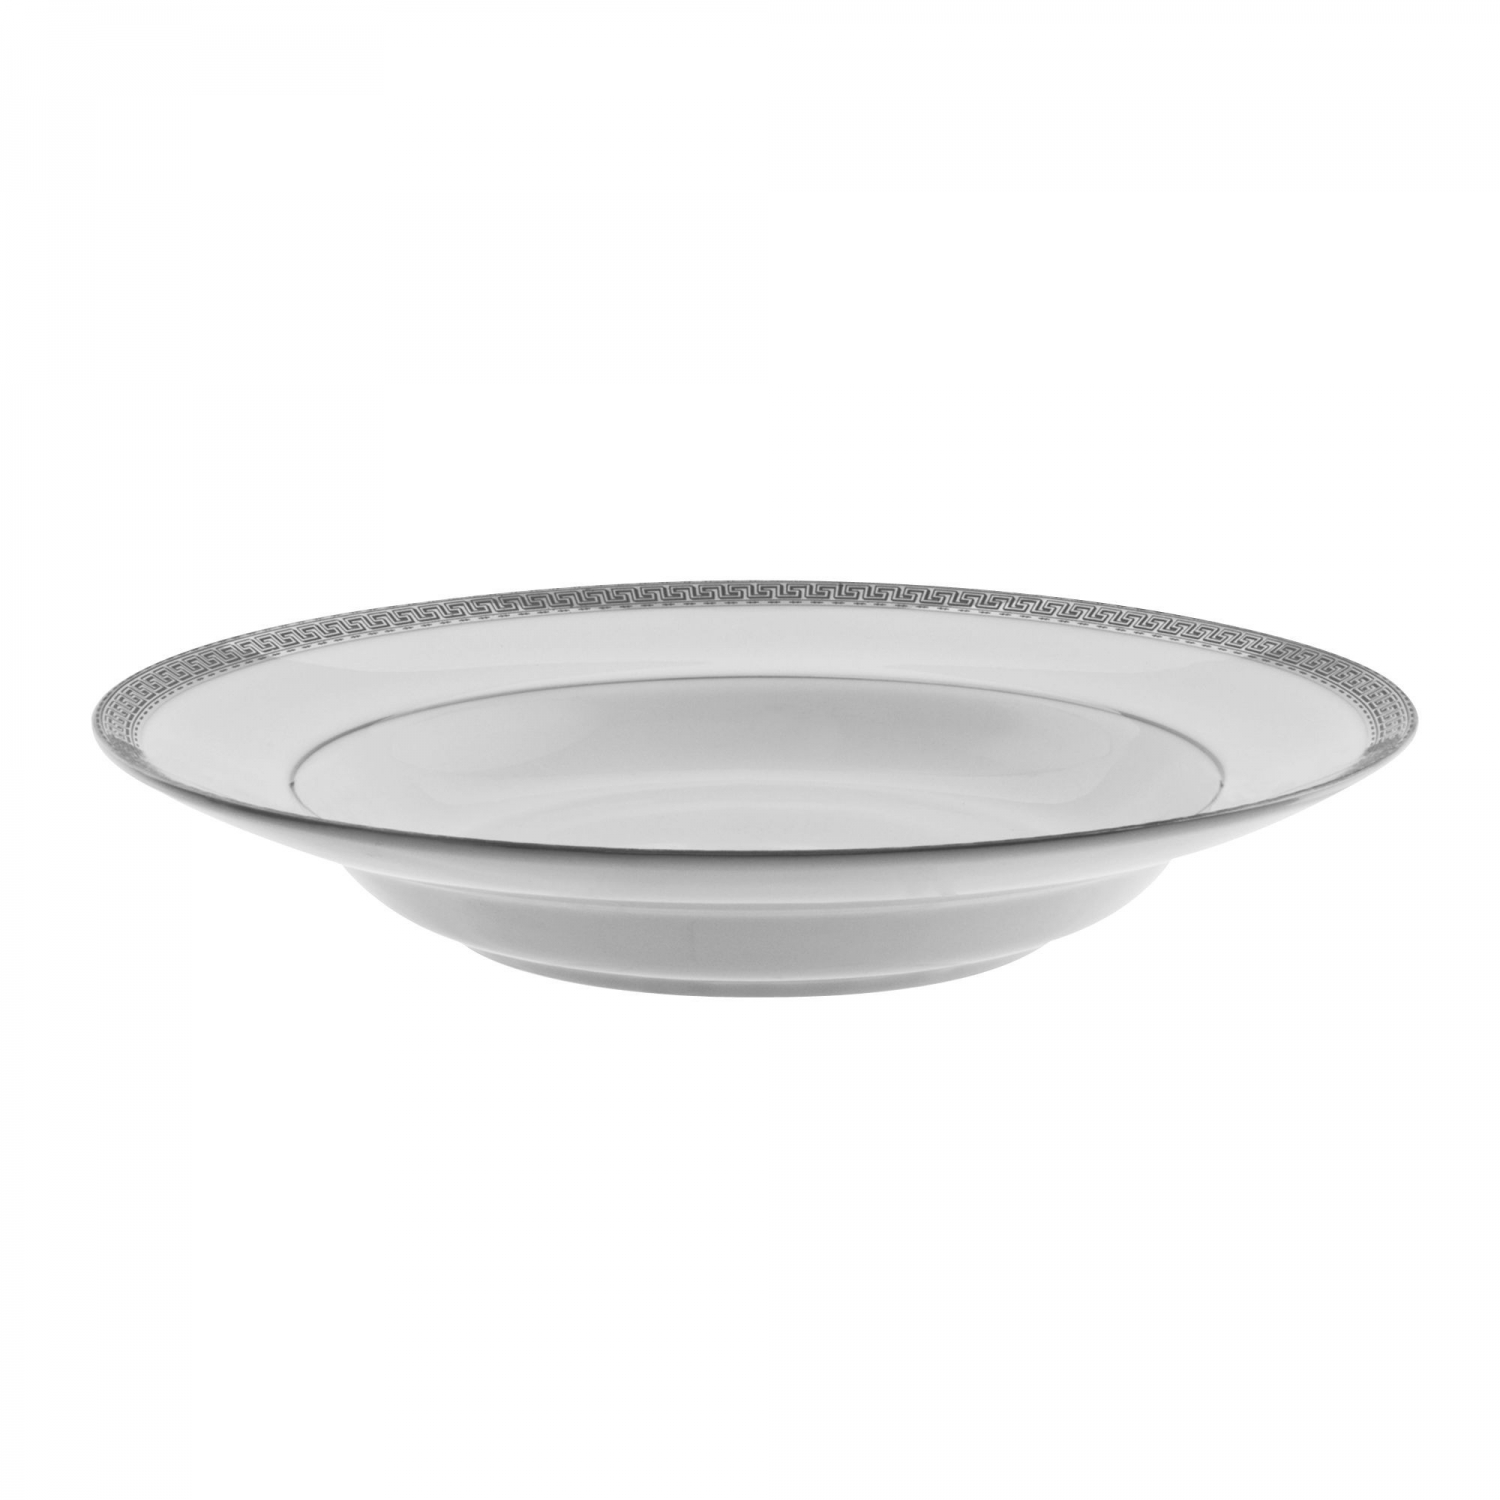 10 Strawberry Street LUX-3P 8 oz. Luxor Platinum Rim Soup Bowl